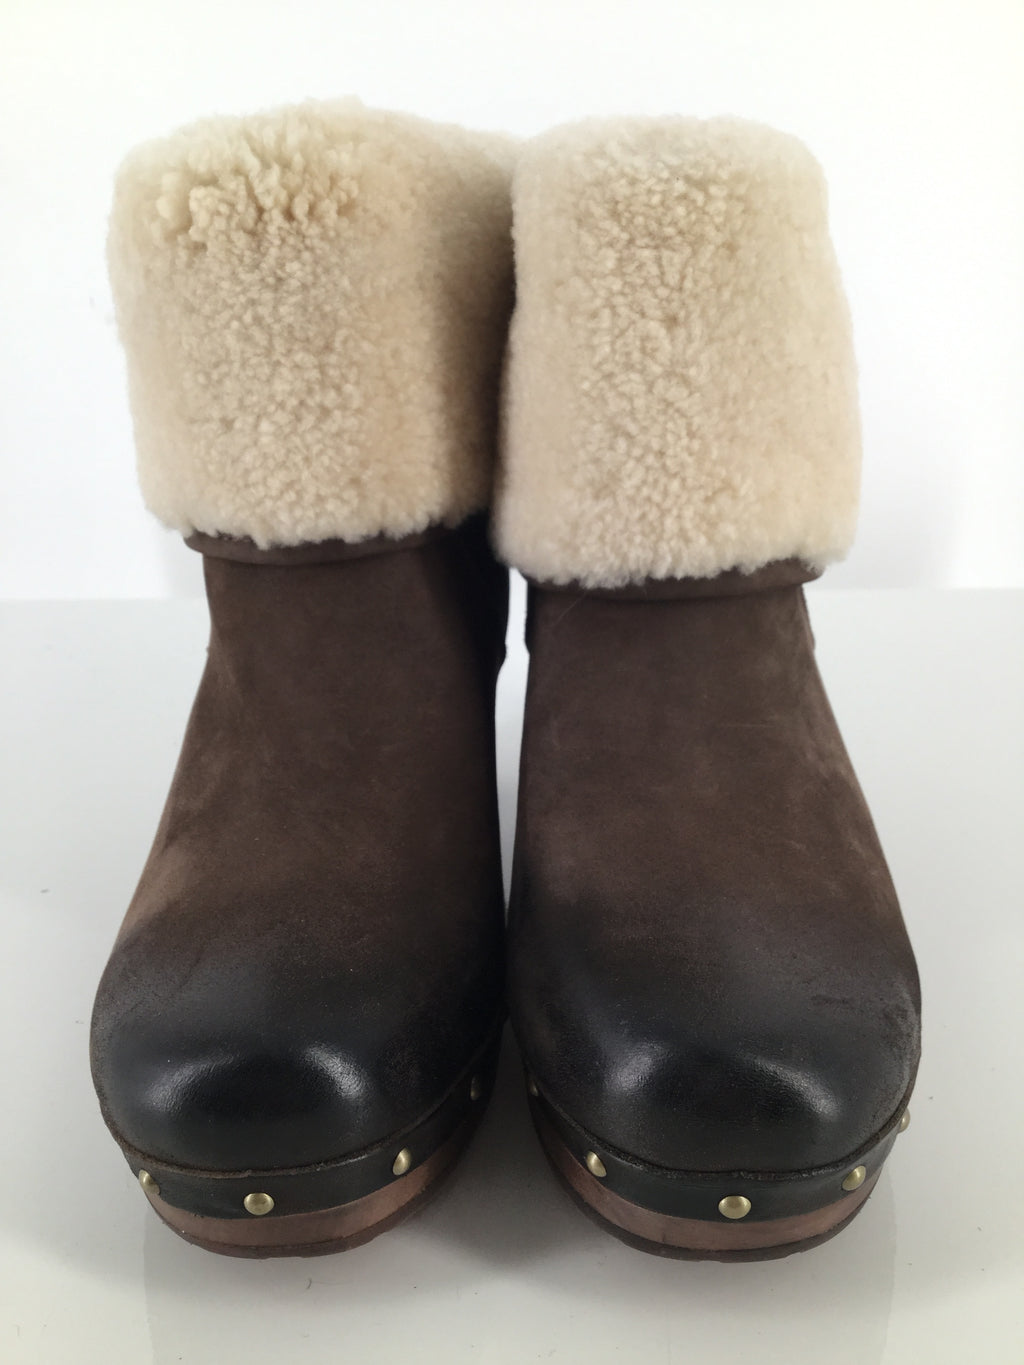 Ugg Boots Ankle Size:6